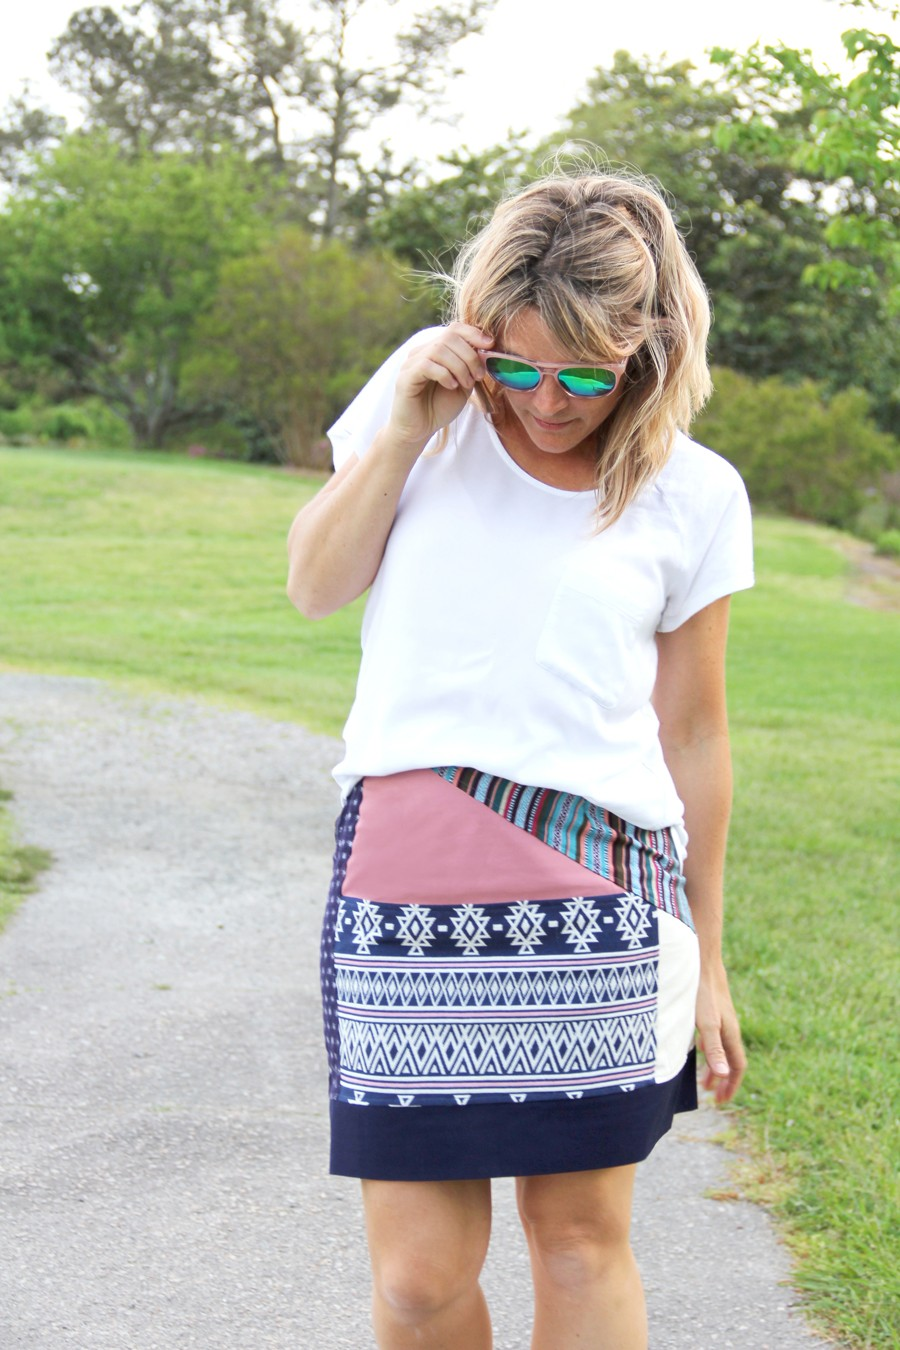 How to make a patchwork skirt || Bohemian Chic Summer Style on a DIY budget